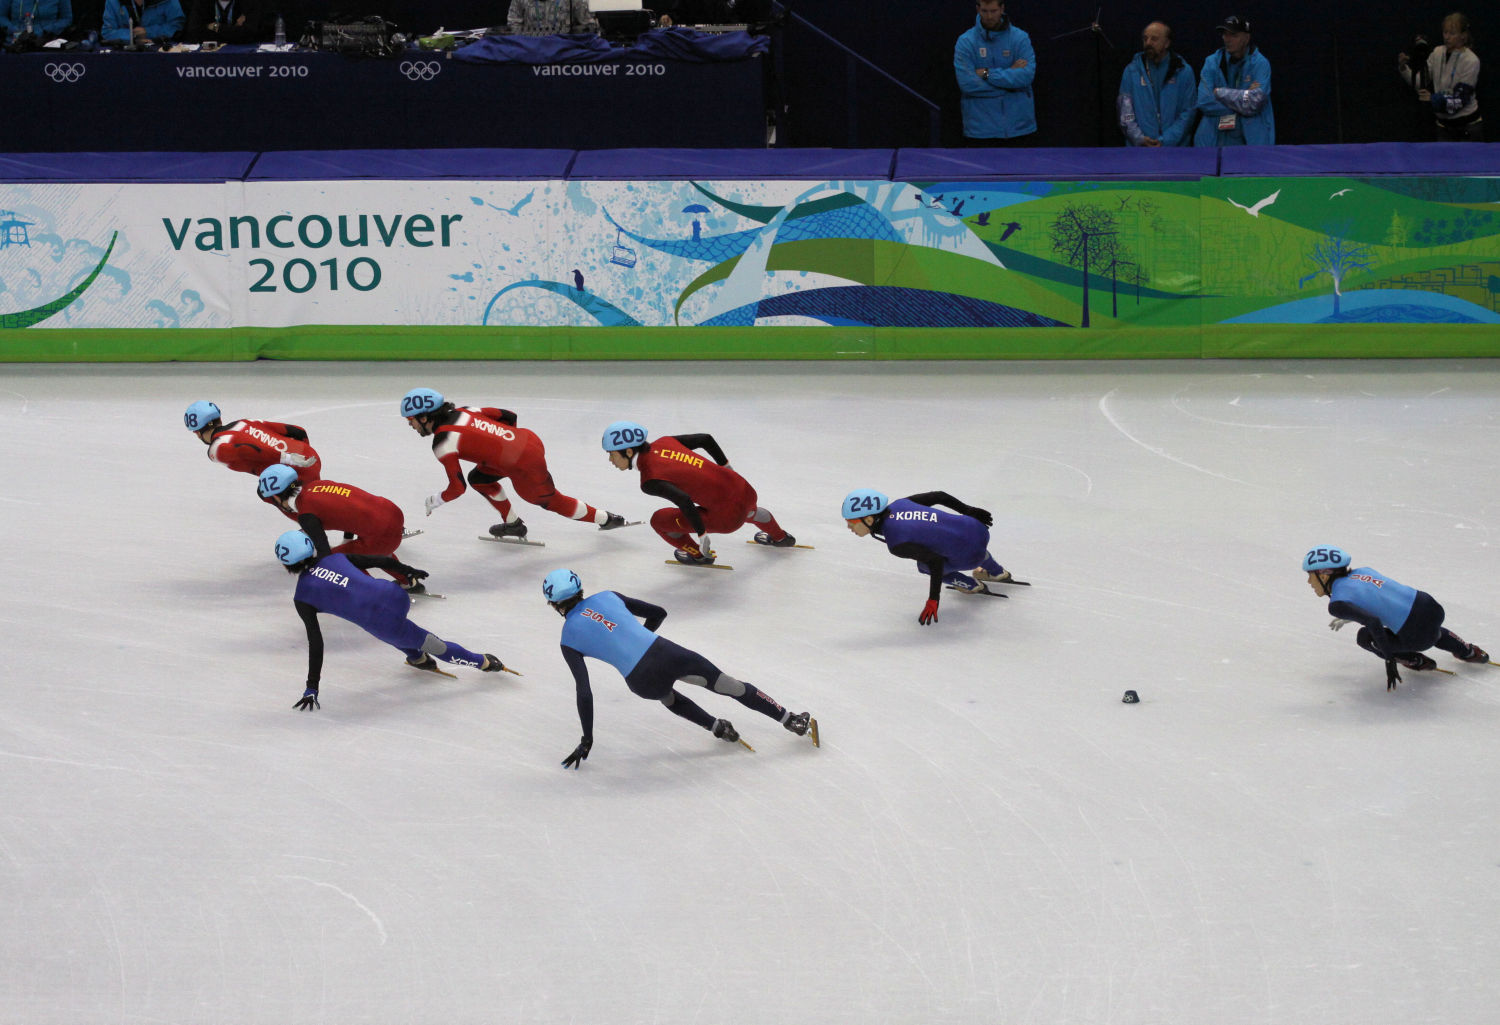 2010 Vancouver - Olympic Games - speed skating IMG_0143.JPG